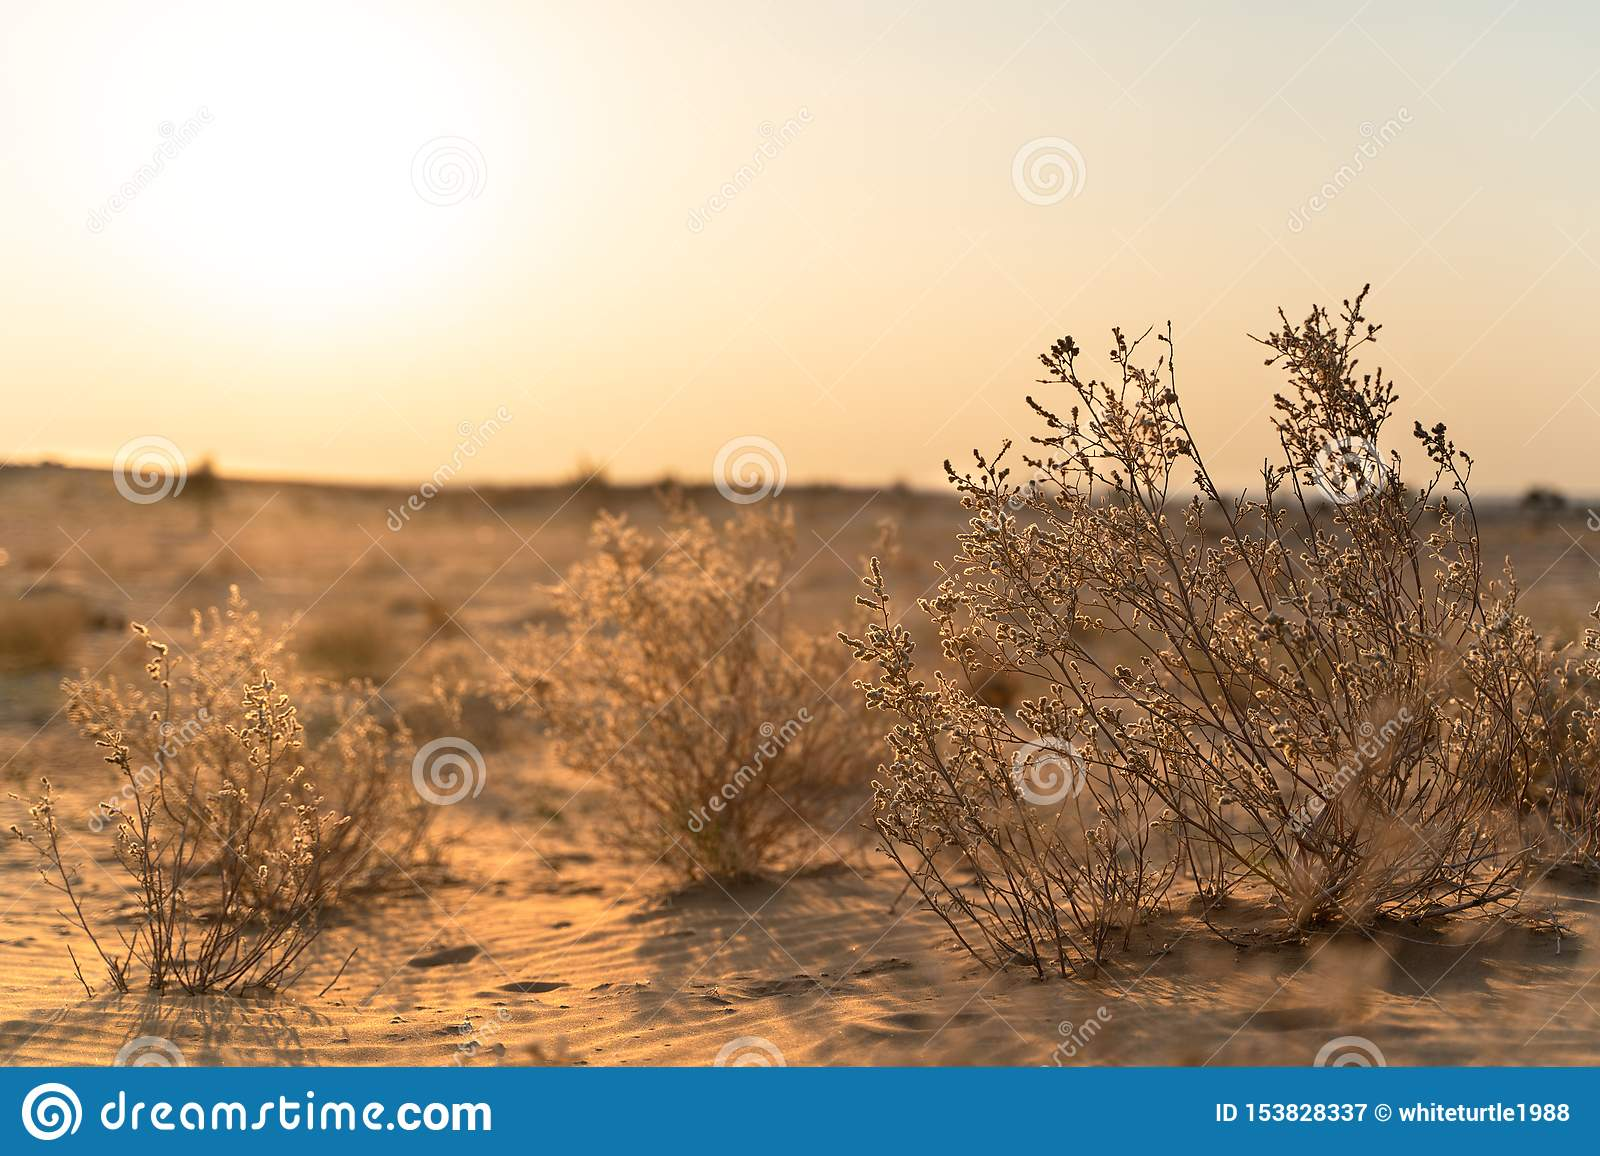 The view in indian desert